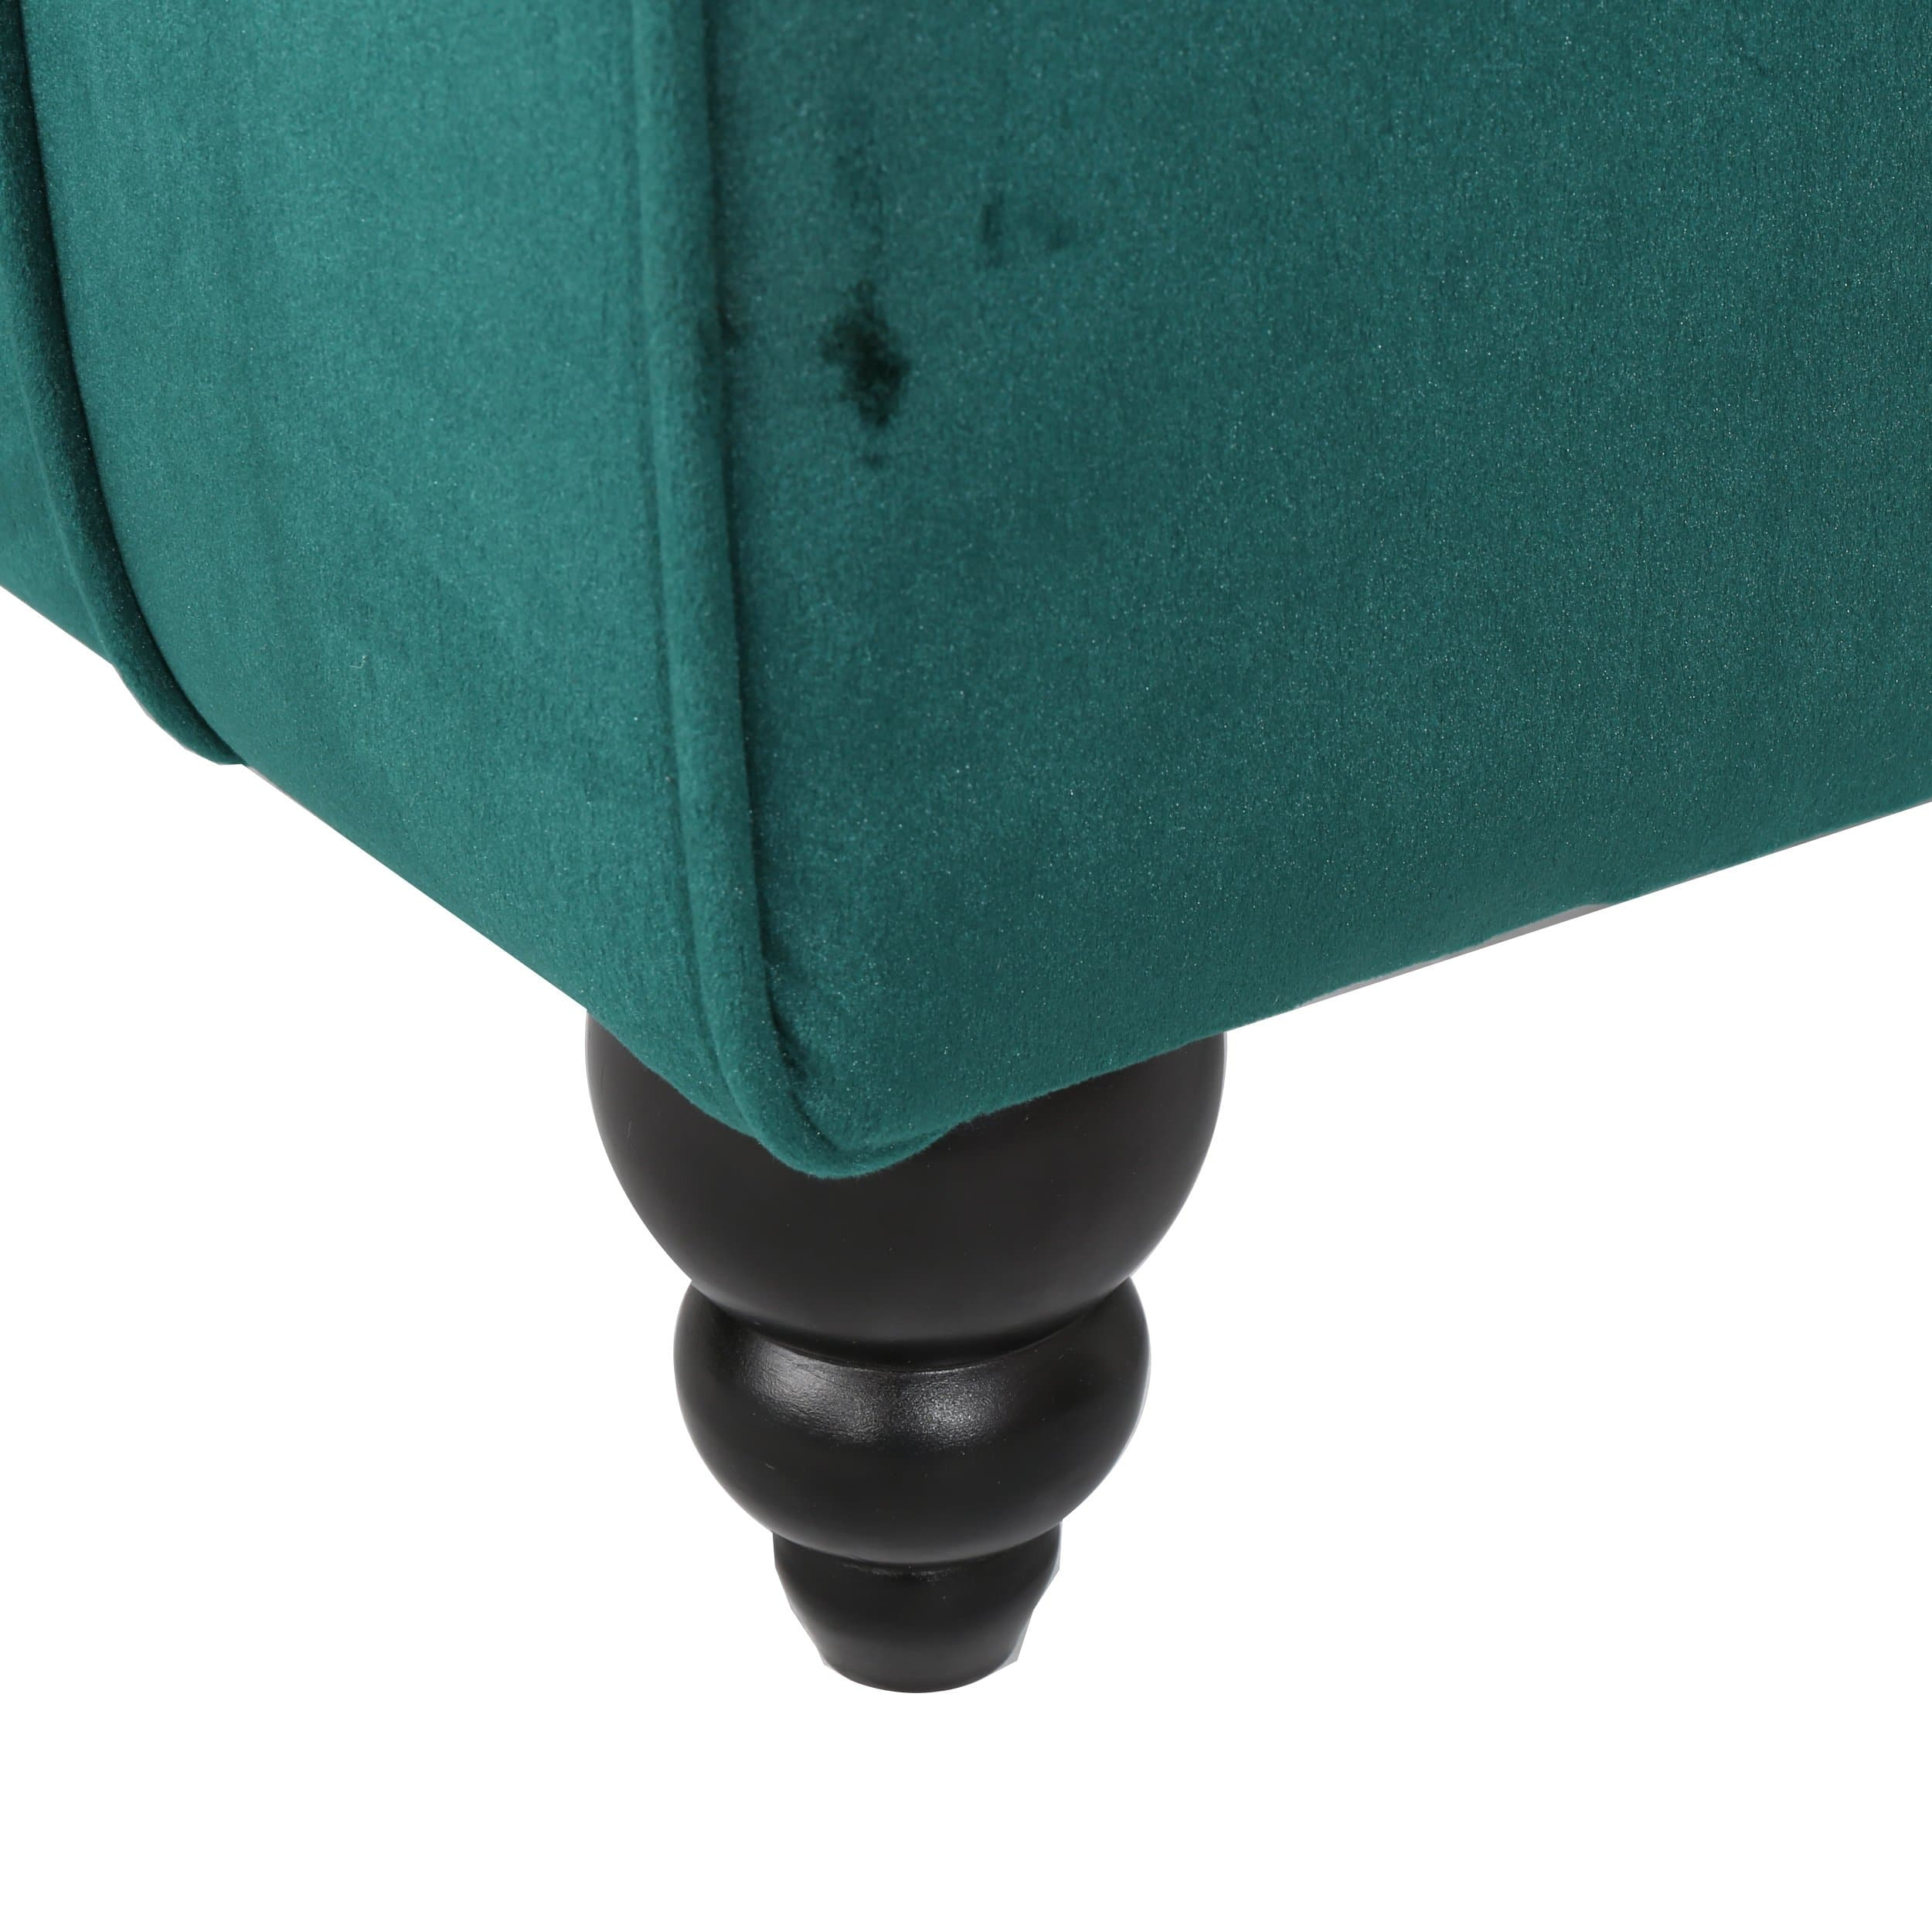 Rafaela Modern Glam Tufted Velvet Chaise Lounge with Scrolled Backrest, Dark Teal and Dark Brown - FLJ CORPORATIONS